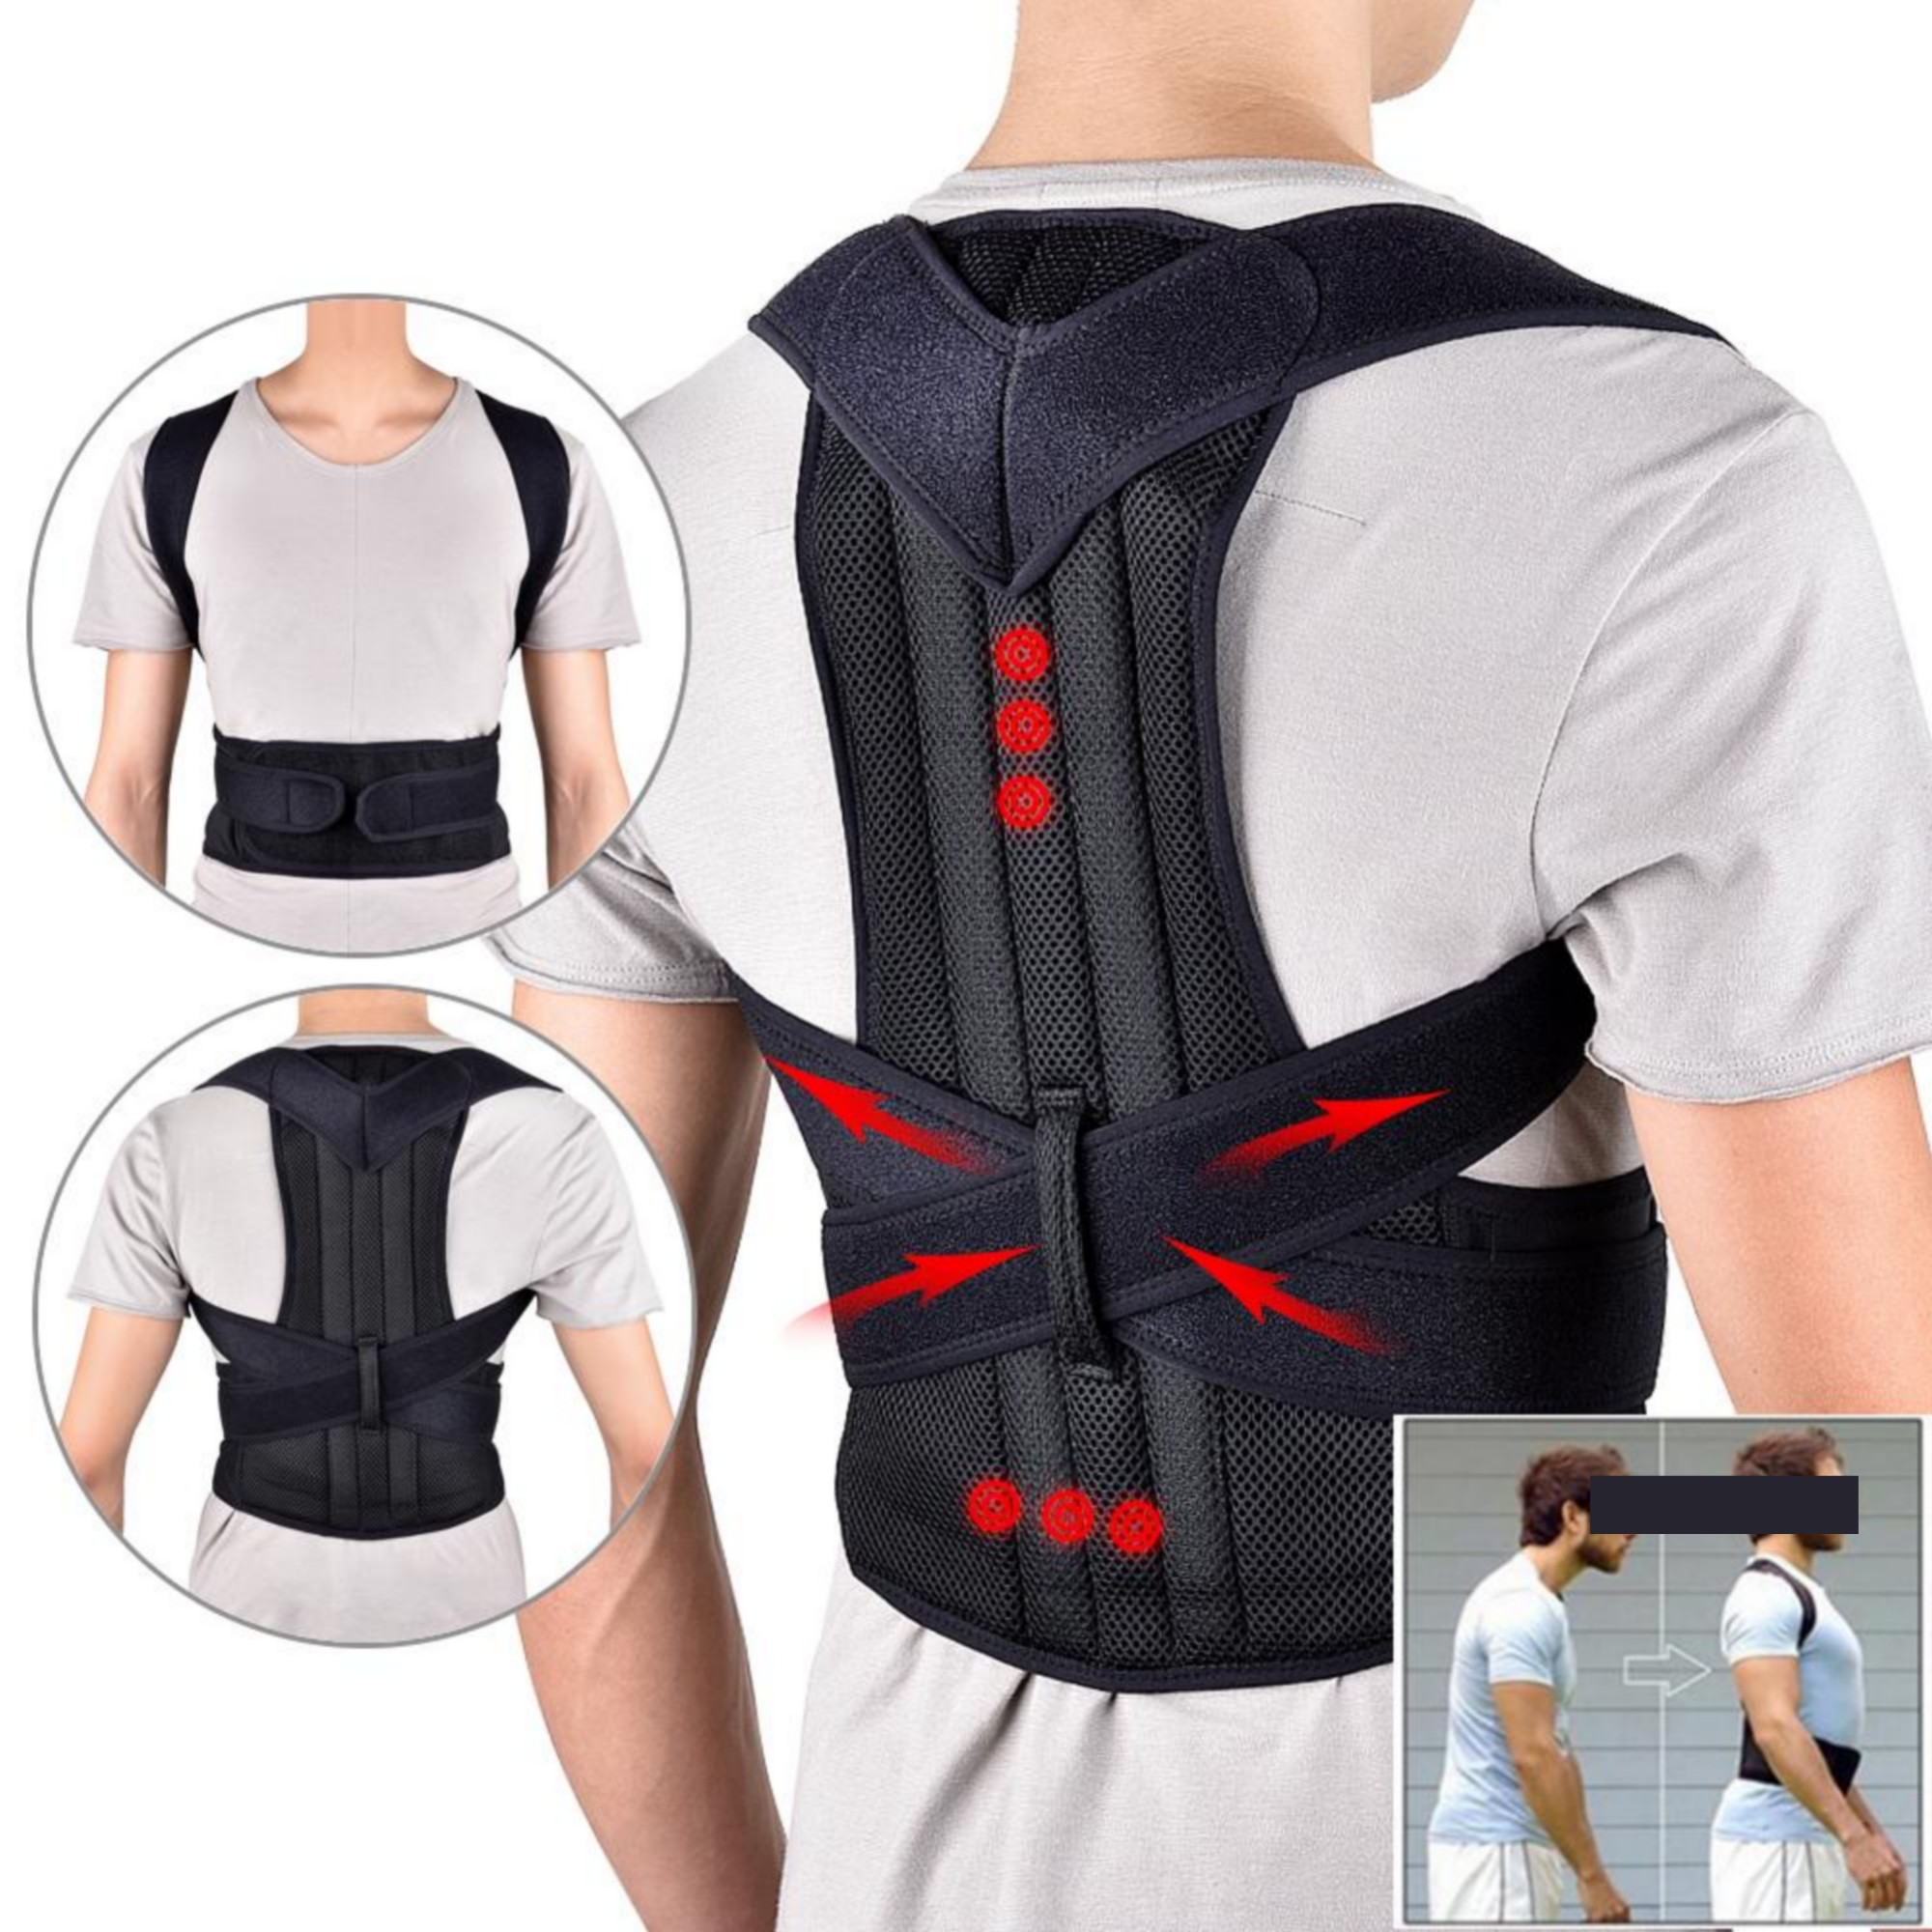 Magnetic Therapy Body Posture Corrector Belt for Back Pain Relief  Posture Corrector Belt for Men Women  Lower Back Pain Belt for Back Posture Corrector  Back Brace Support Belt Straight Posture